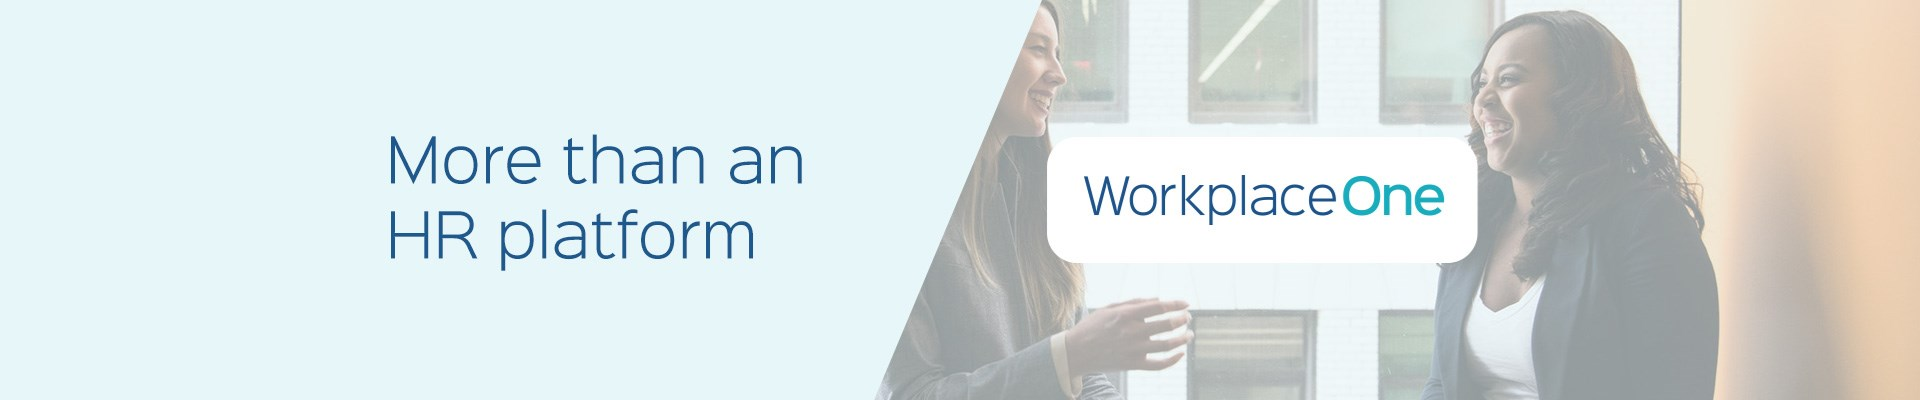 WorkplaceOne HR Platform